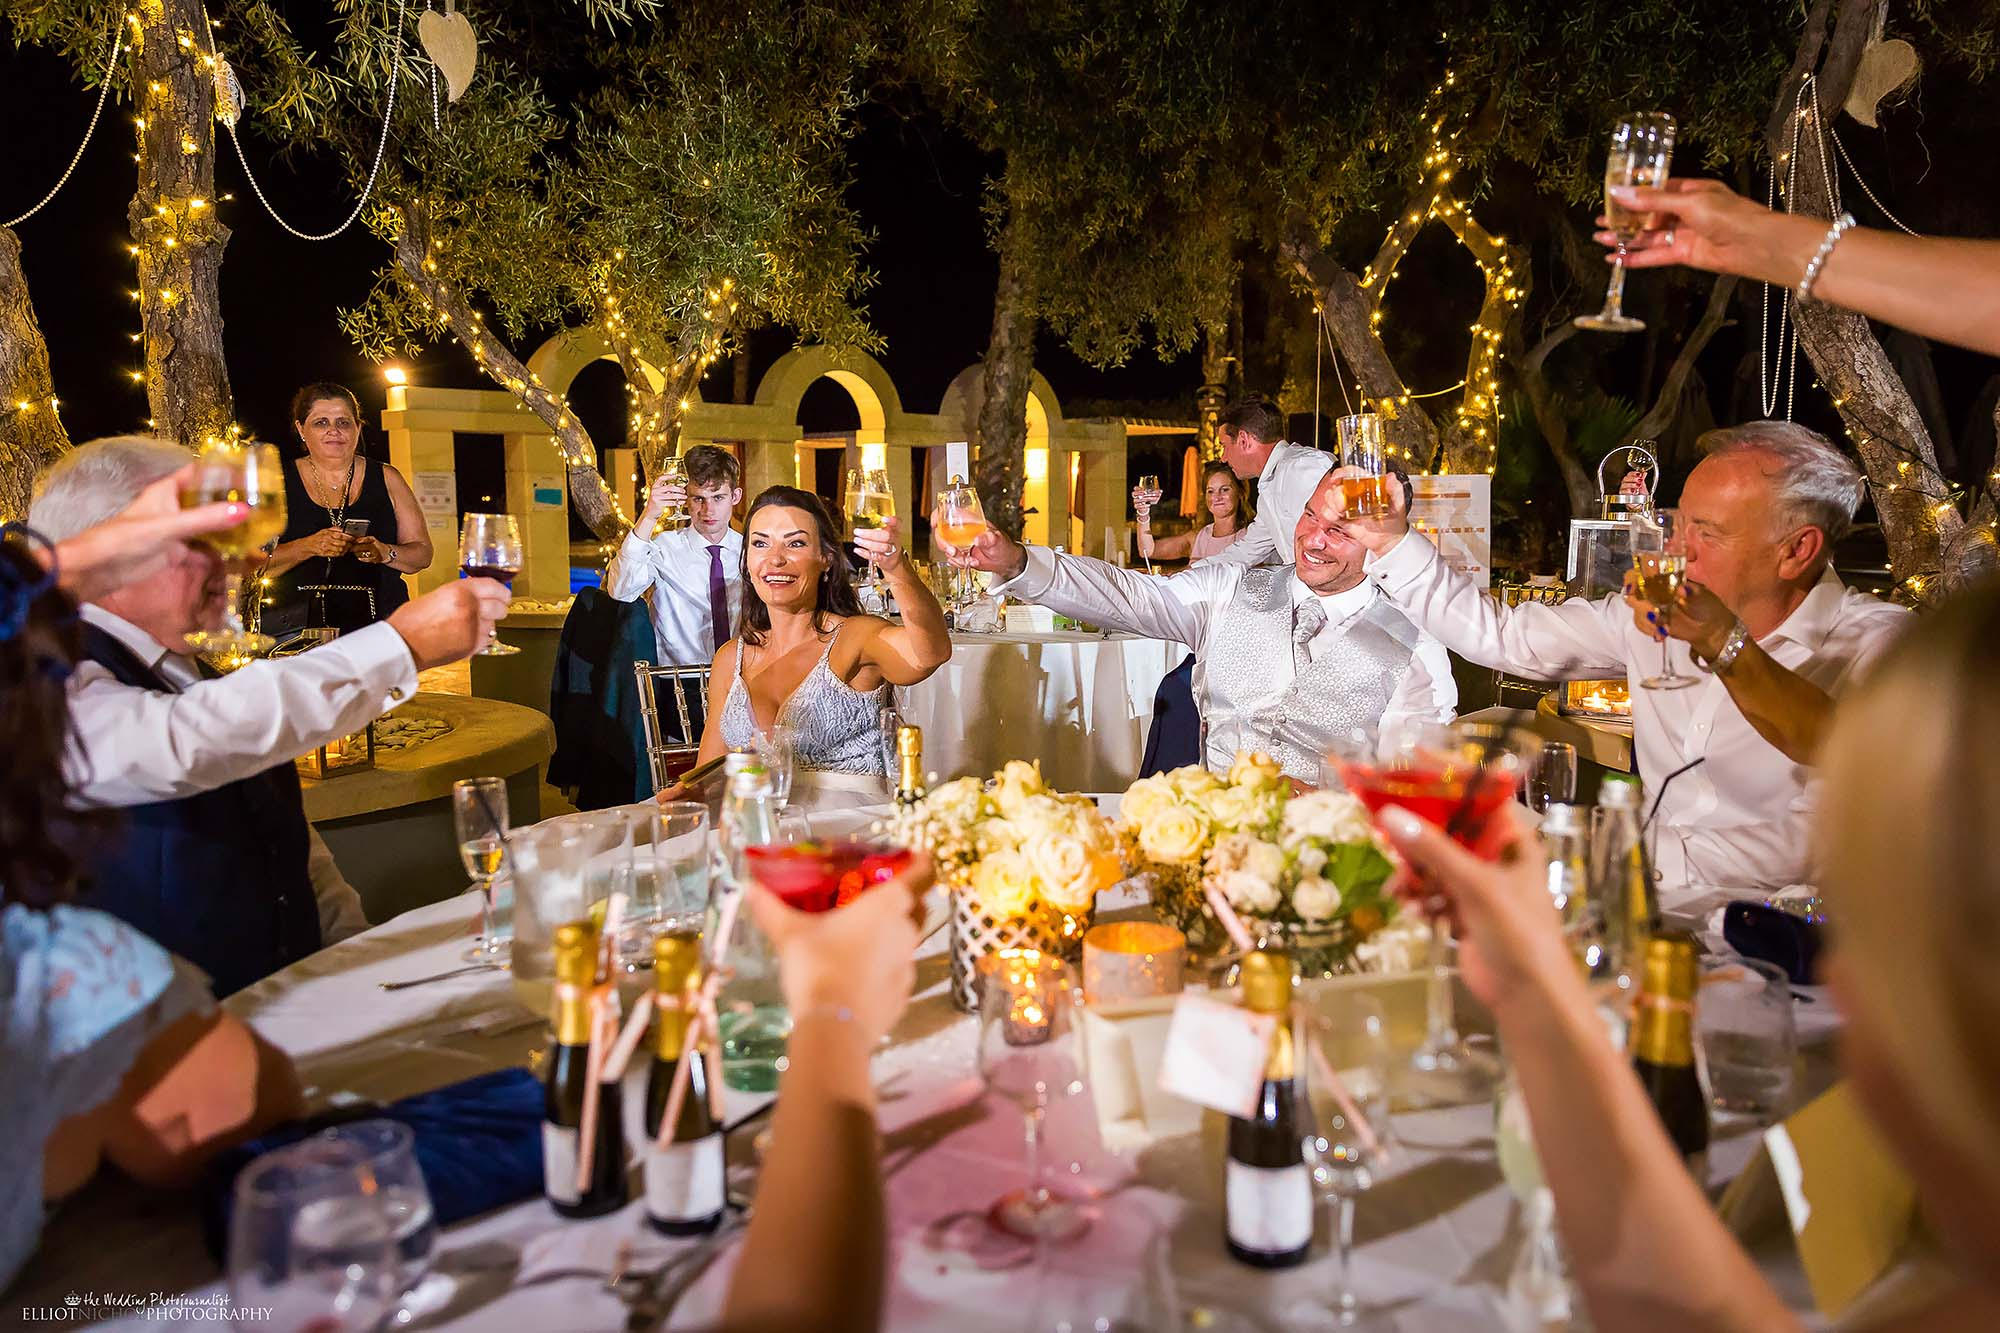 Top table raises their glasses in a toast to the bride and groom. Wedding Photography by Elliot Nichol.